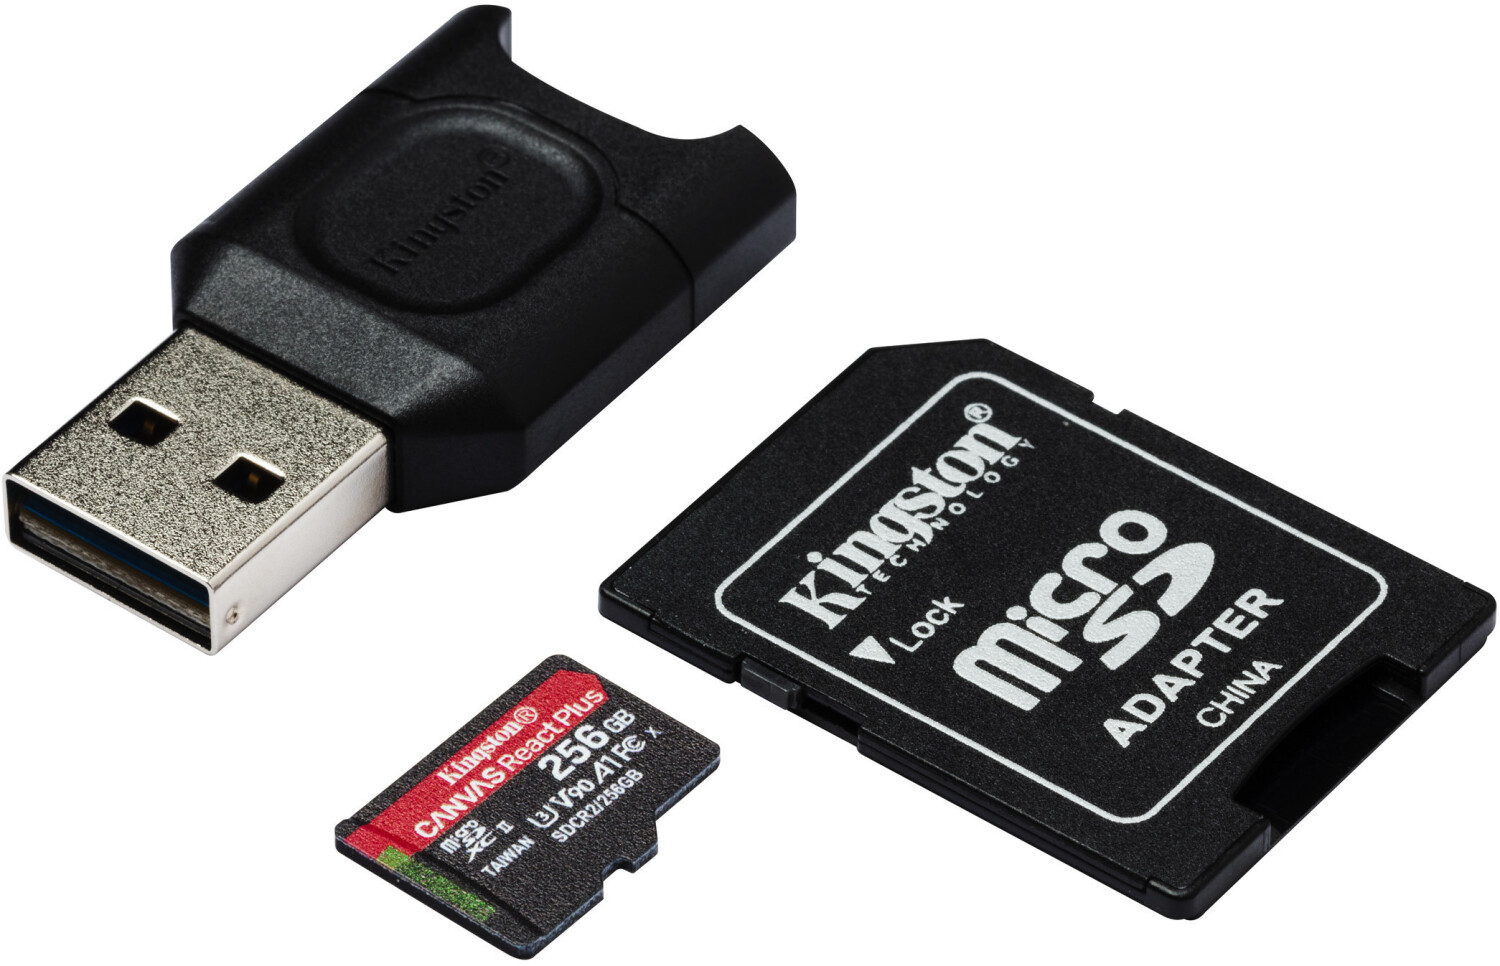 SanFlash Kingston 64GB React MicroSDXC for Zen Mobile X5 with SD Adapter 100MBs Works with Kingston